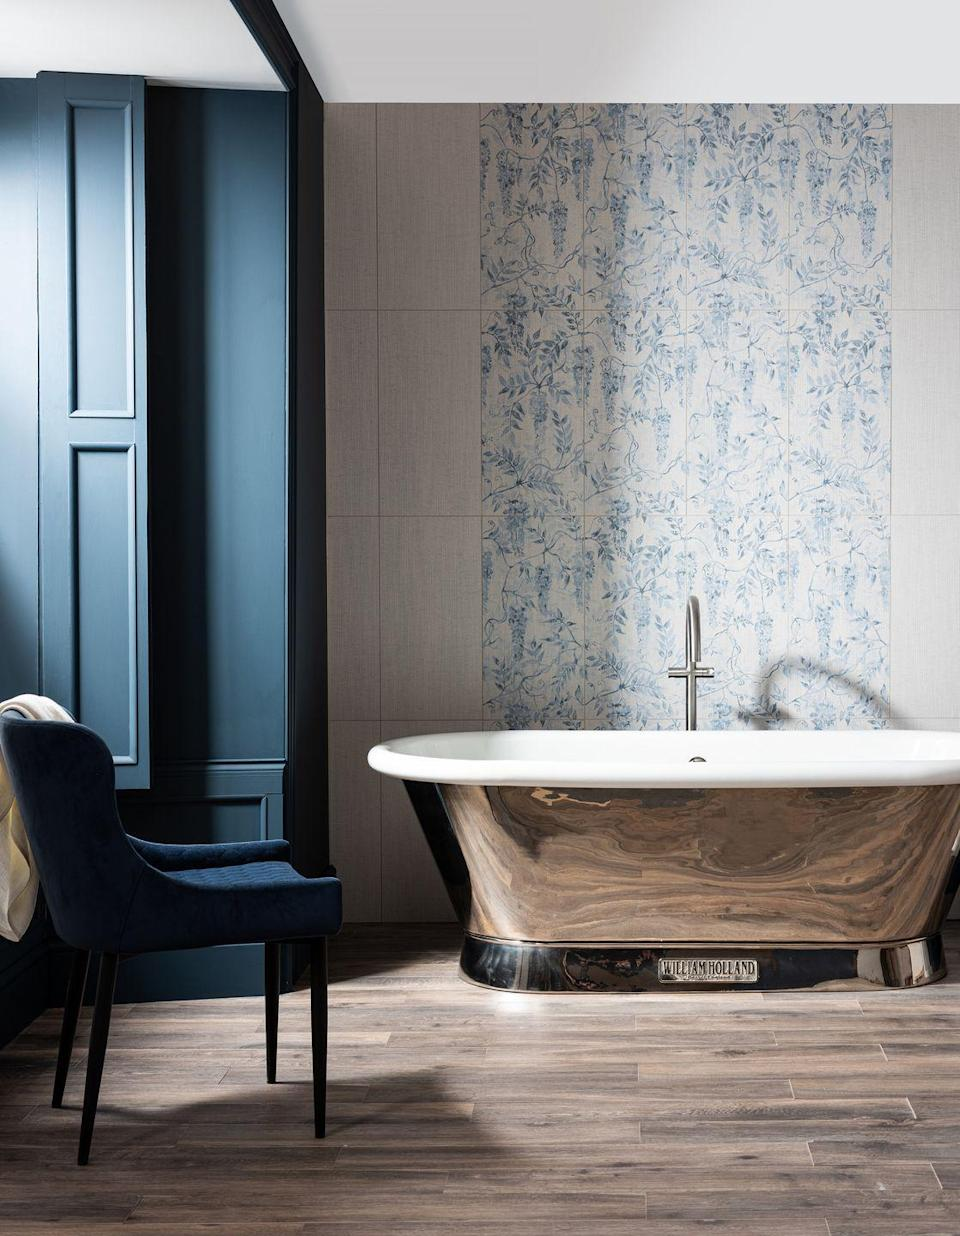 """<p>These pale blue ceramic tiles from Original Style are reminiscent of Delft pottery, adding a touch of visual interest and classic references to an otherwise plain bathroom. Where an entire wall of heavily patterned tiles may be overwhelming, this clever column frames the feature bathtub and offsets the white walls. </p><p>Pictured: <a href=""""https://www.originalstyle.com/tiles/product/CS2302-6030"""" rel=""""nofollow noopener"""" target=""""_blank"""" data-ylk=""""slk:Arbour Ceramic Tiles at Original Style"""" class=""""link rapid-noclick-resp"""">Arbour Ceramic Tiles at Original Style</a></p>"""